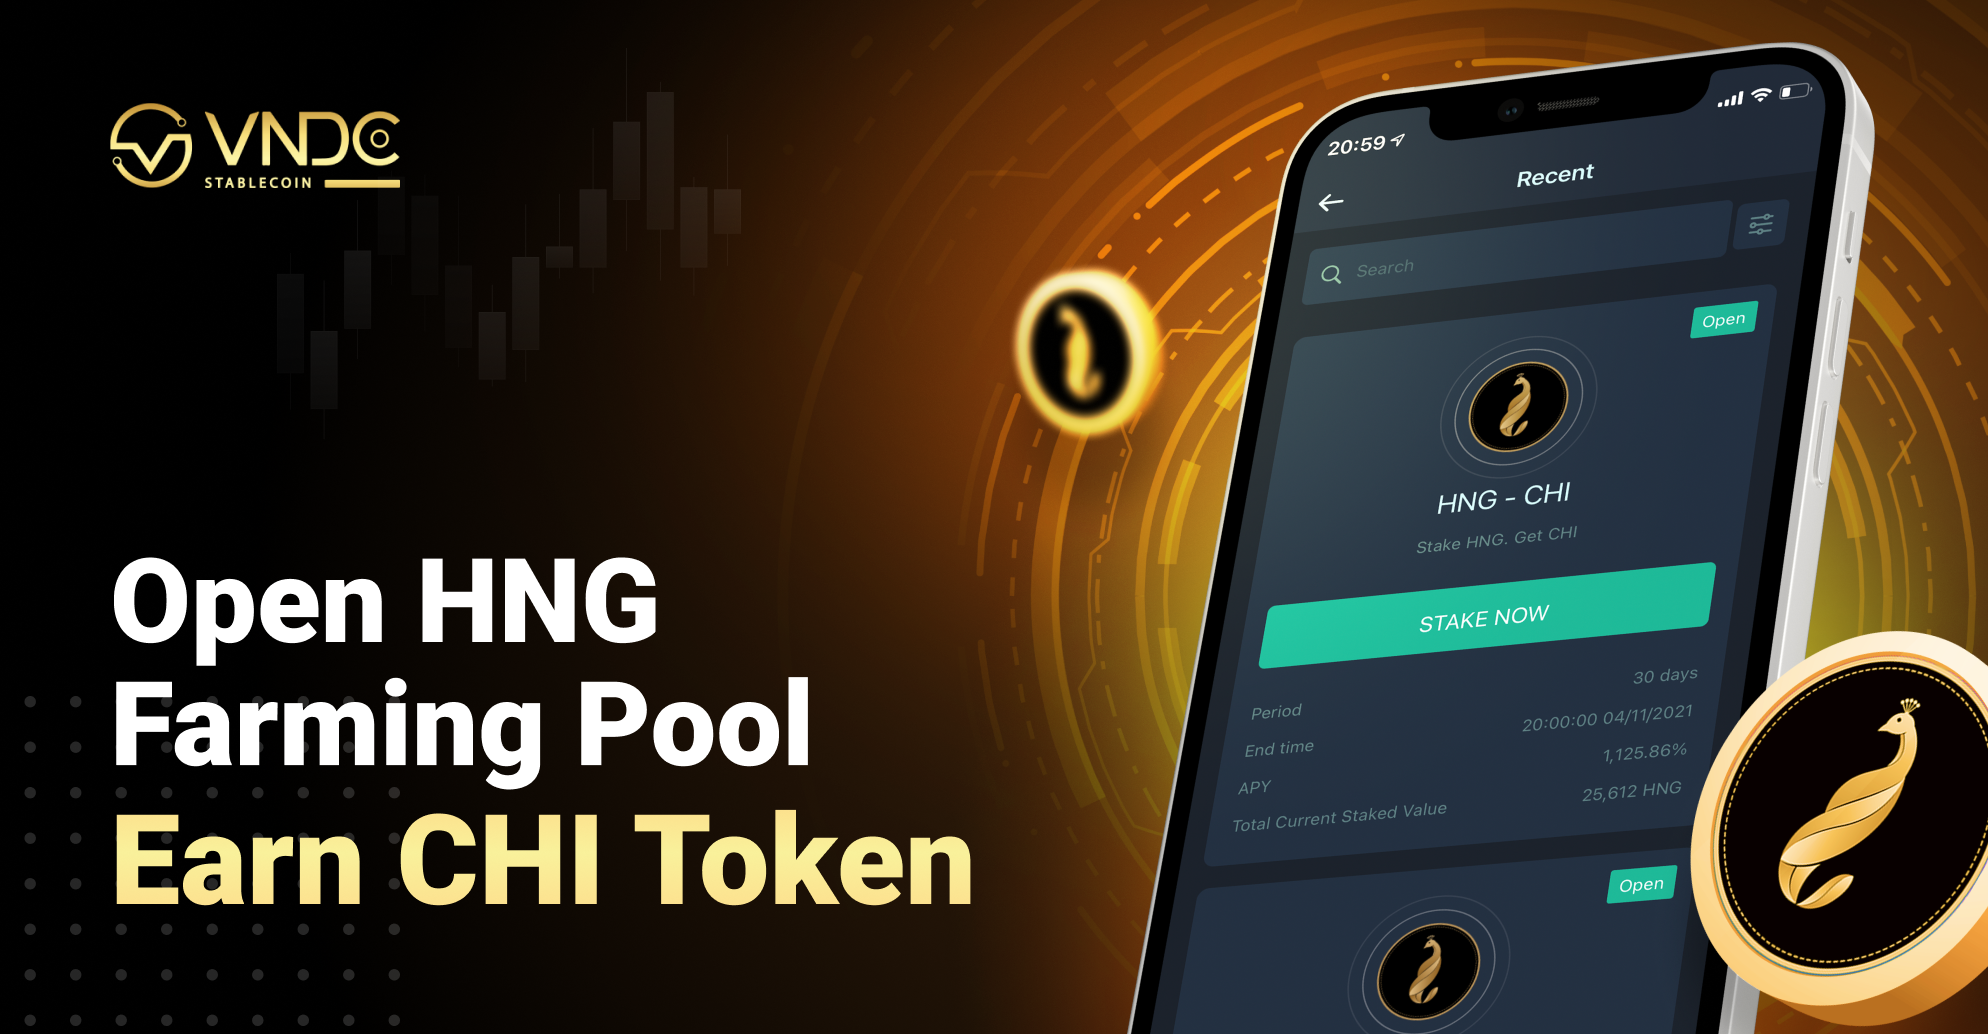 Open Farming Pool for HNG, Earn CHI Token